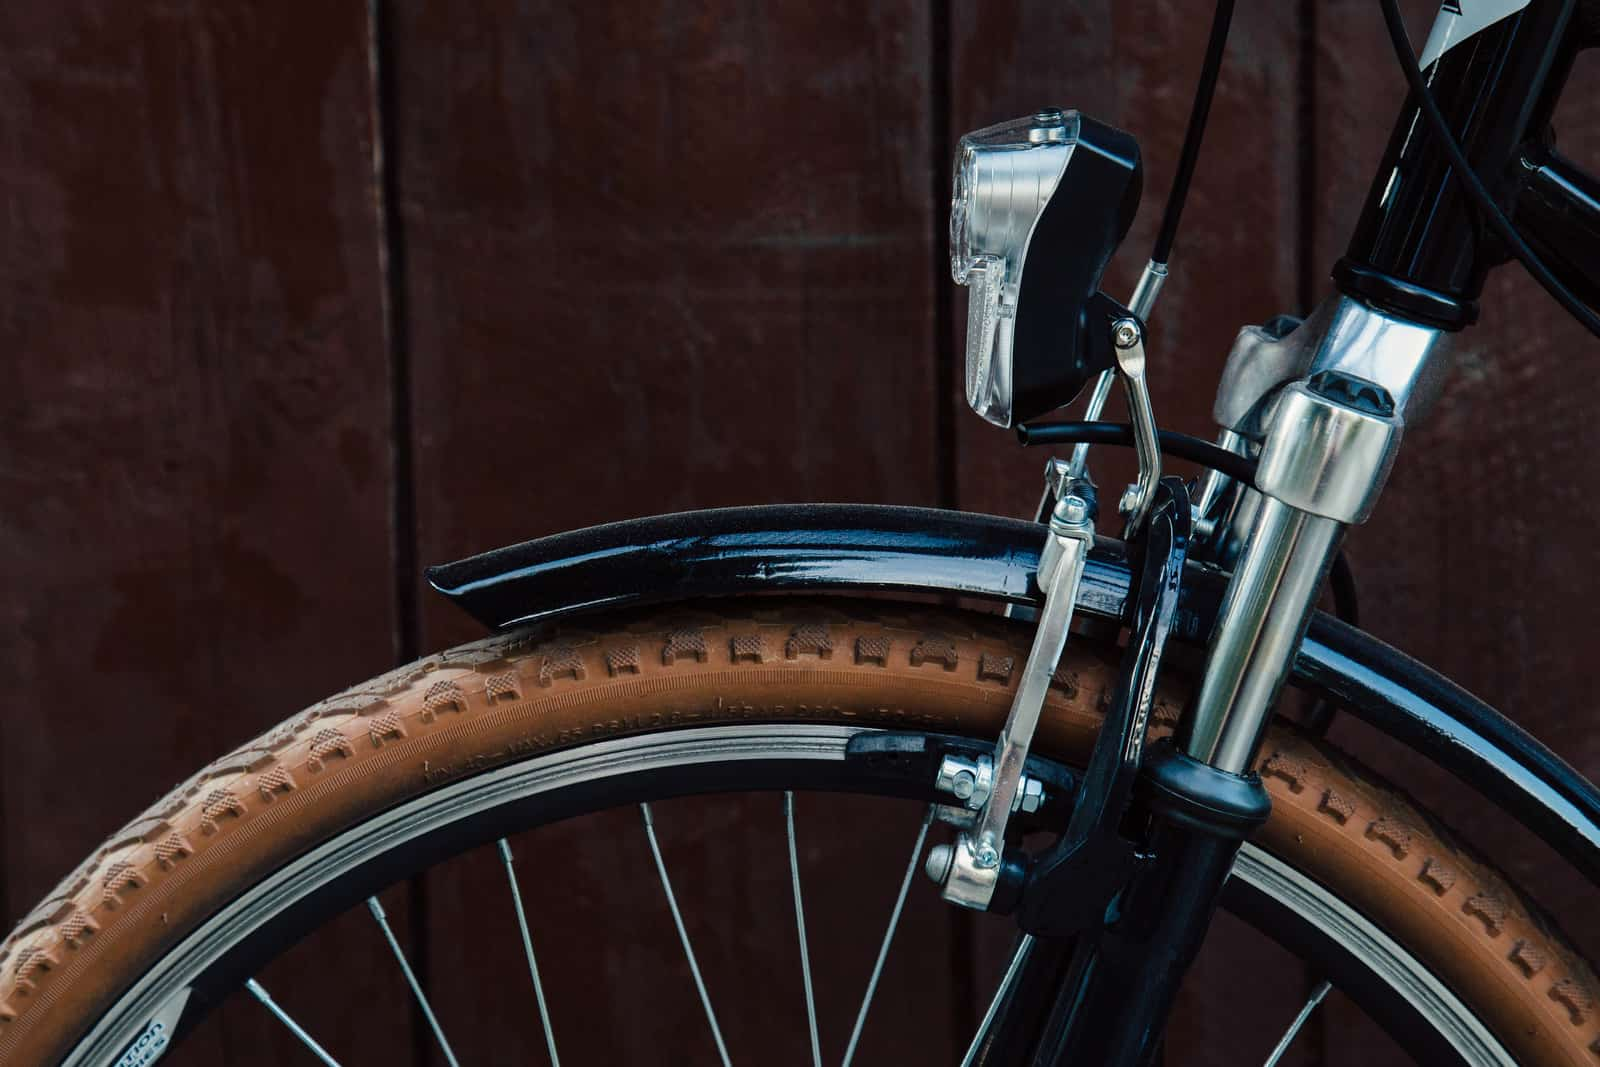 fix squeaky bike brakes on an old bicycle